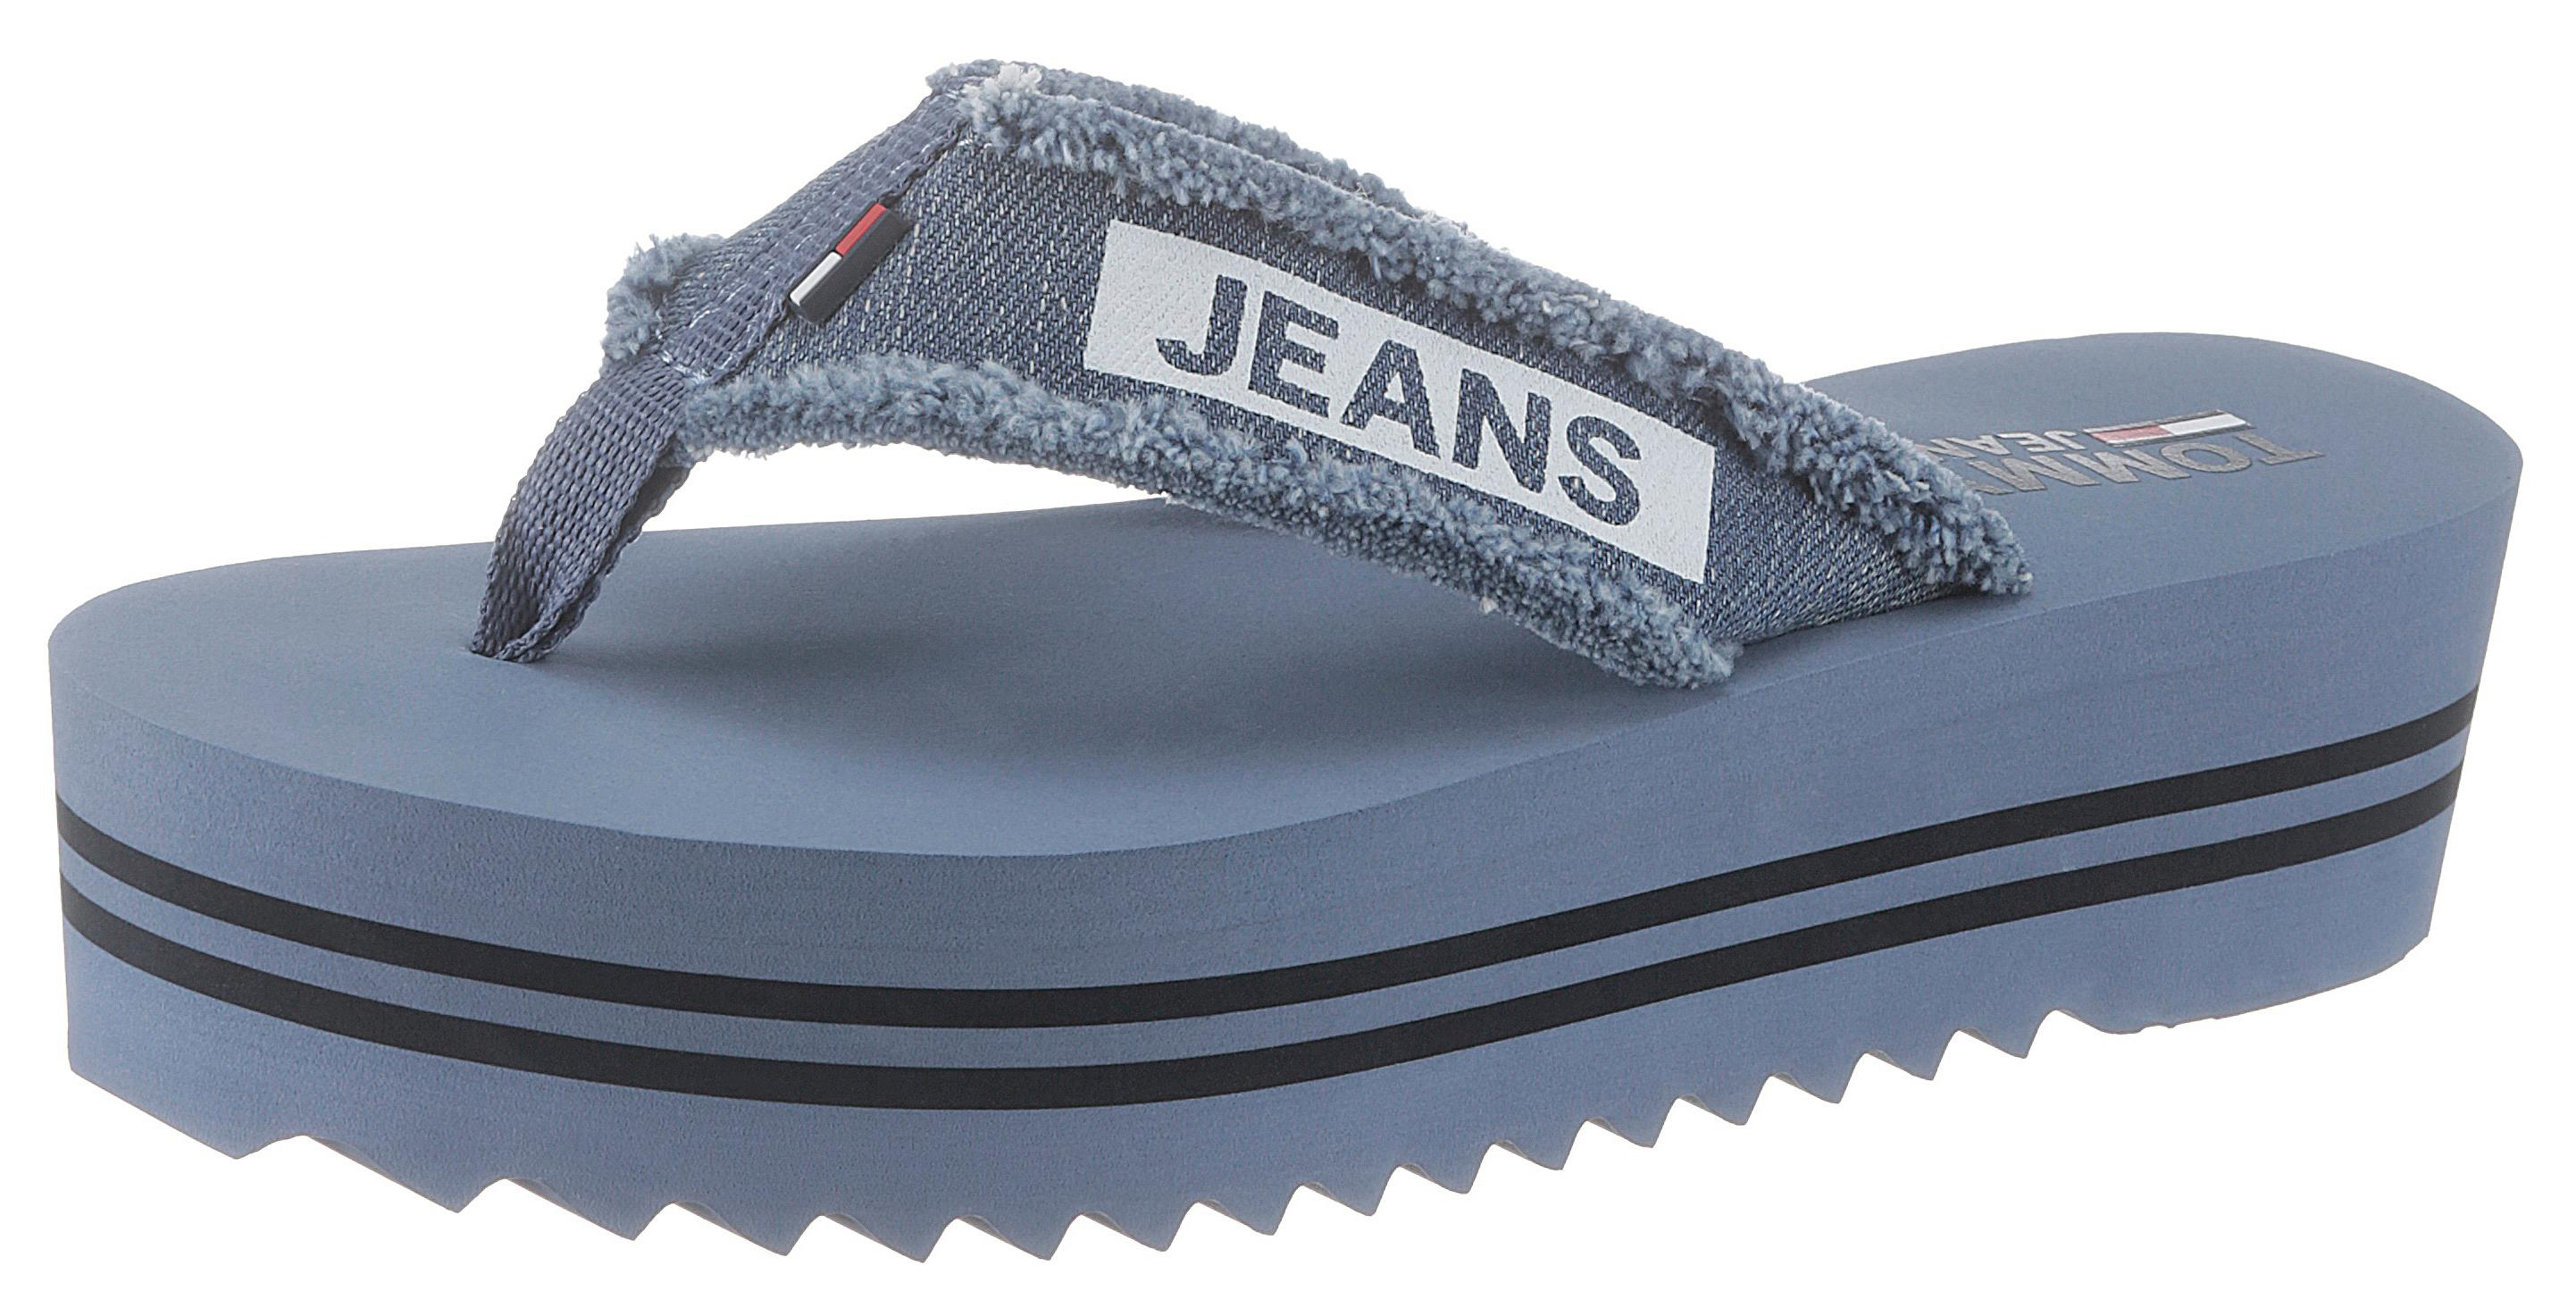 TOMMY JEANS Zehentrenner Harbour | Schuhe > Sandalen & Zehentrenner > Zehentrenner | Blau | Tommy Jeans